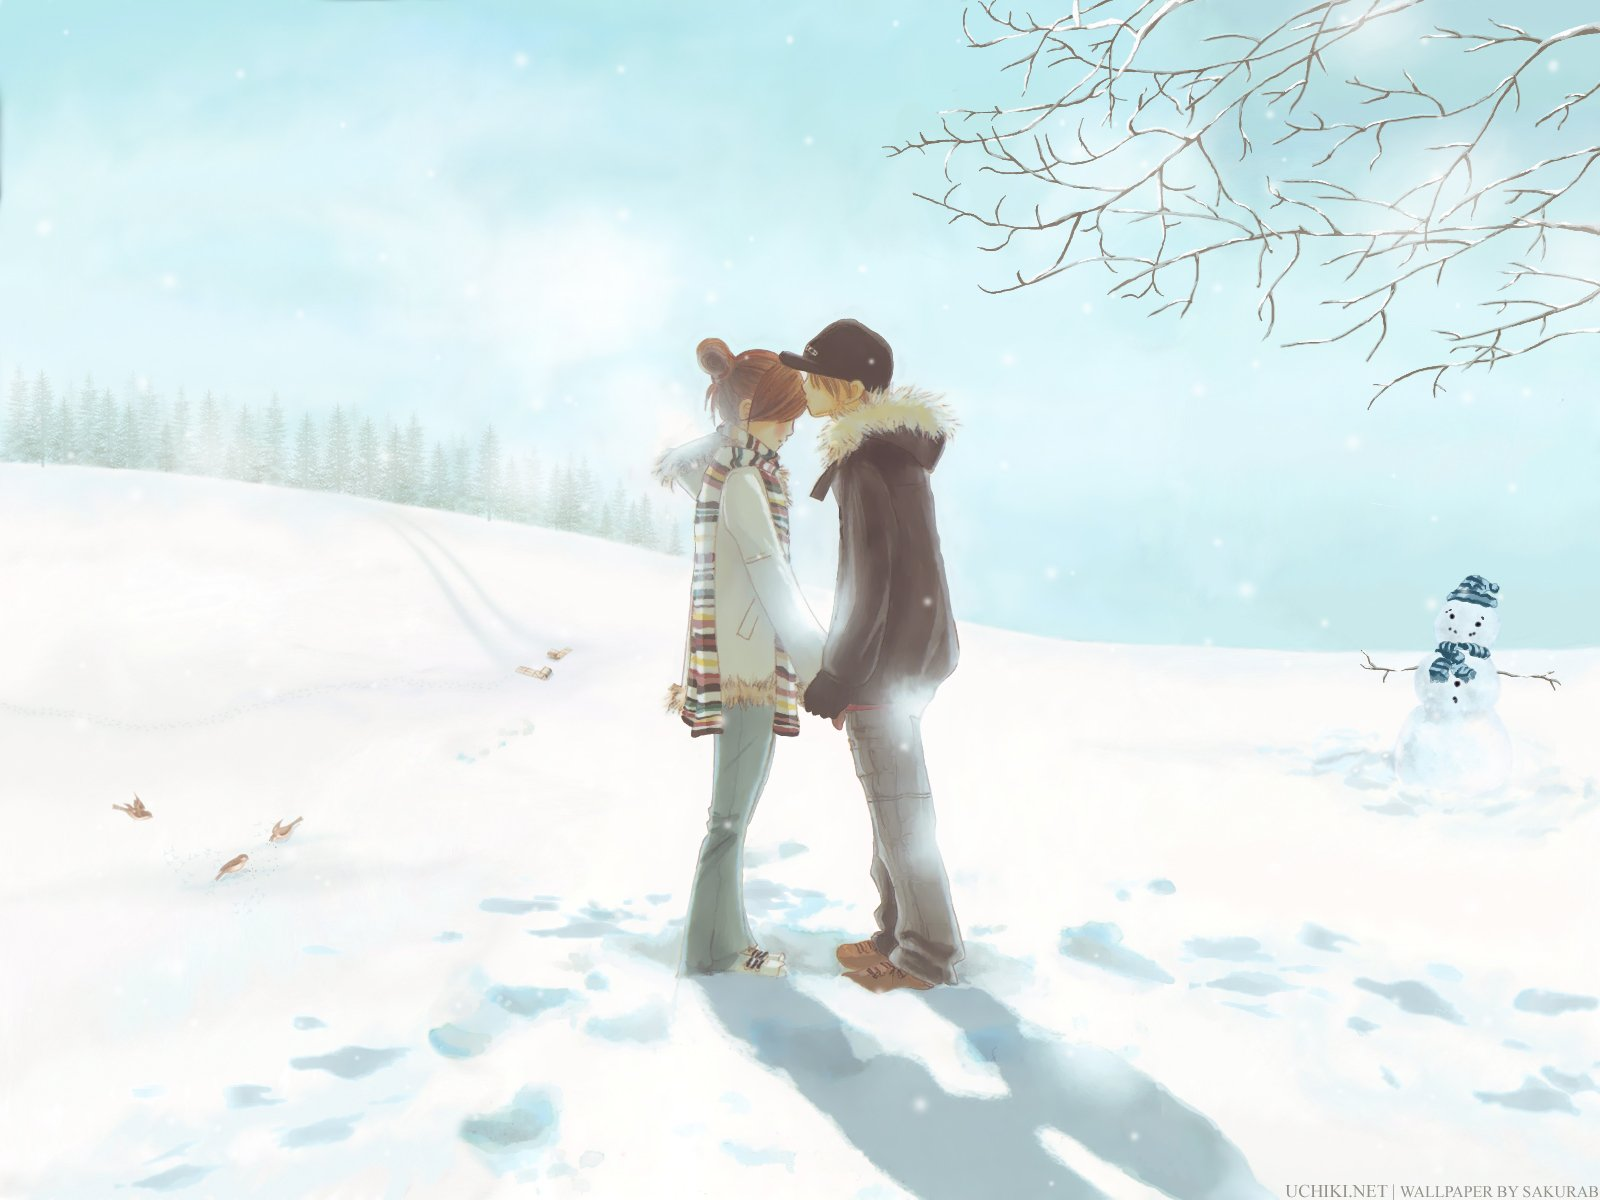 Anime Winter Scenery Wallpaper | Wallpapers | Pinterest | Scenery ...